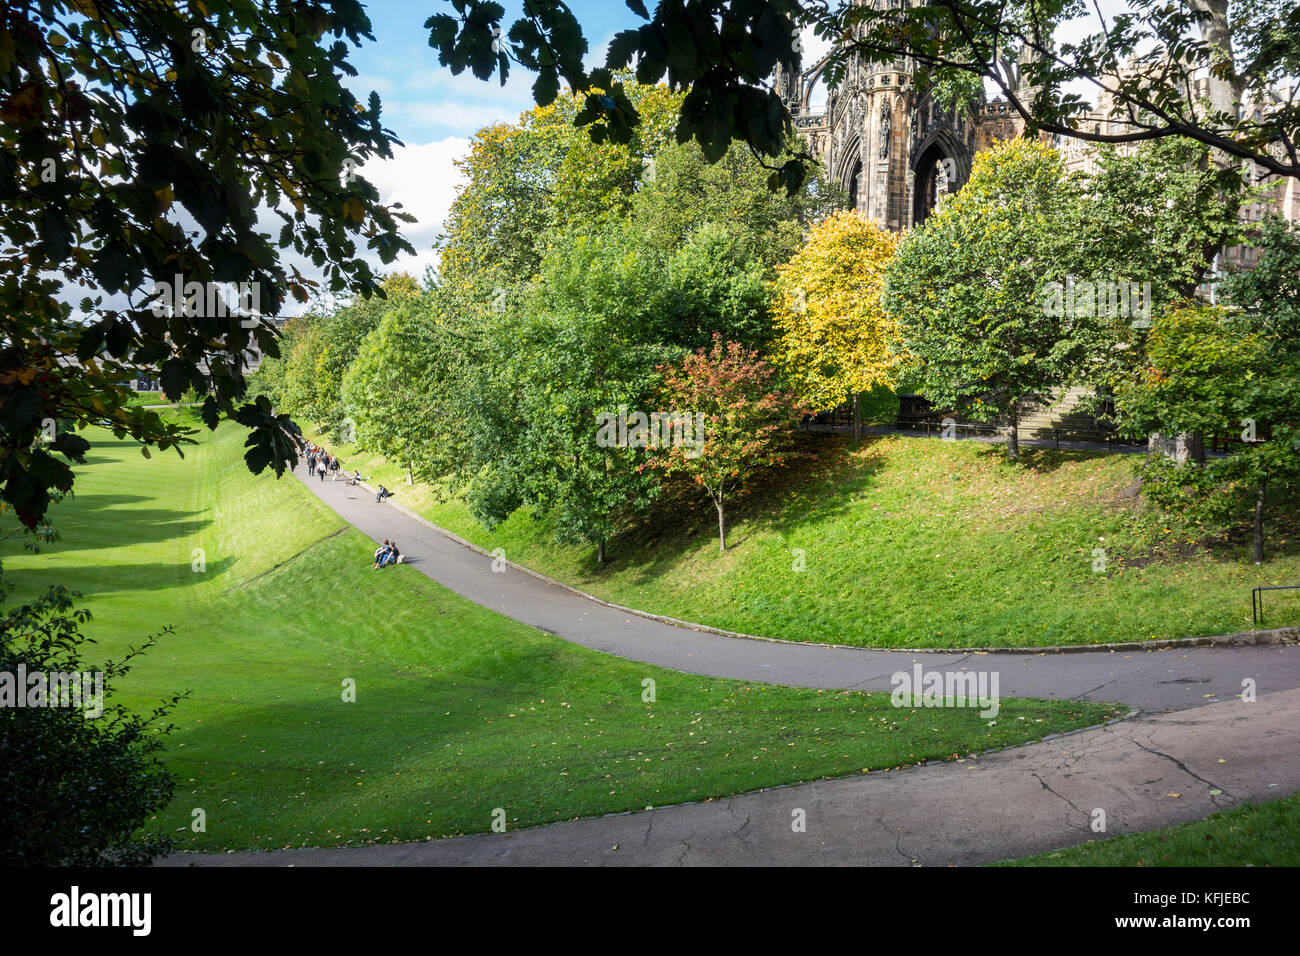 Princes Street Gardens, public park in Edinburgh city centre, Scotland, UK Stock Photo